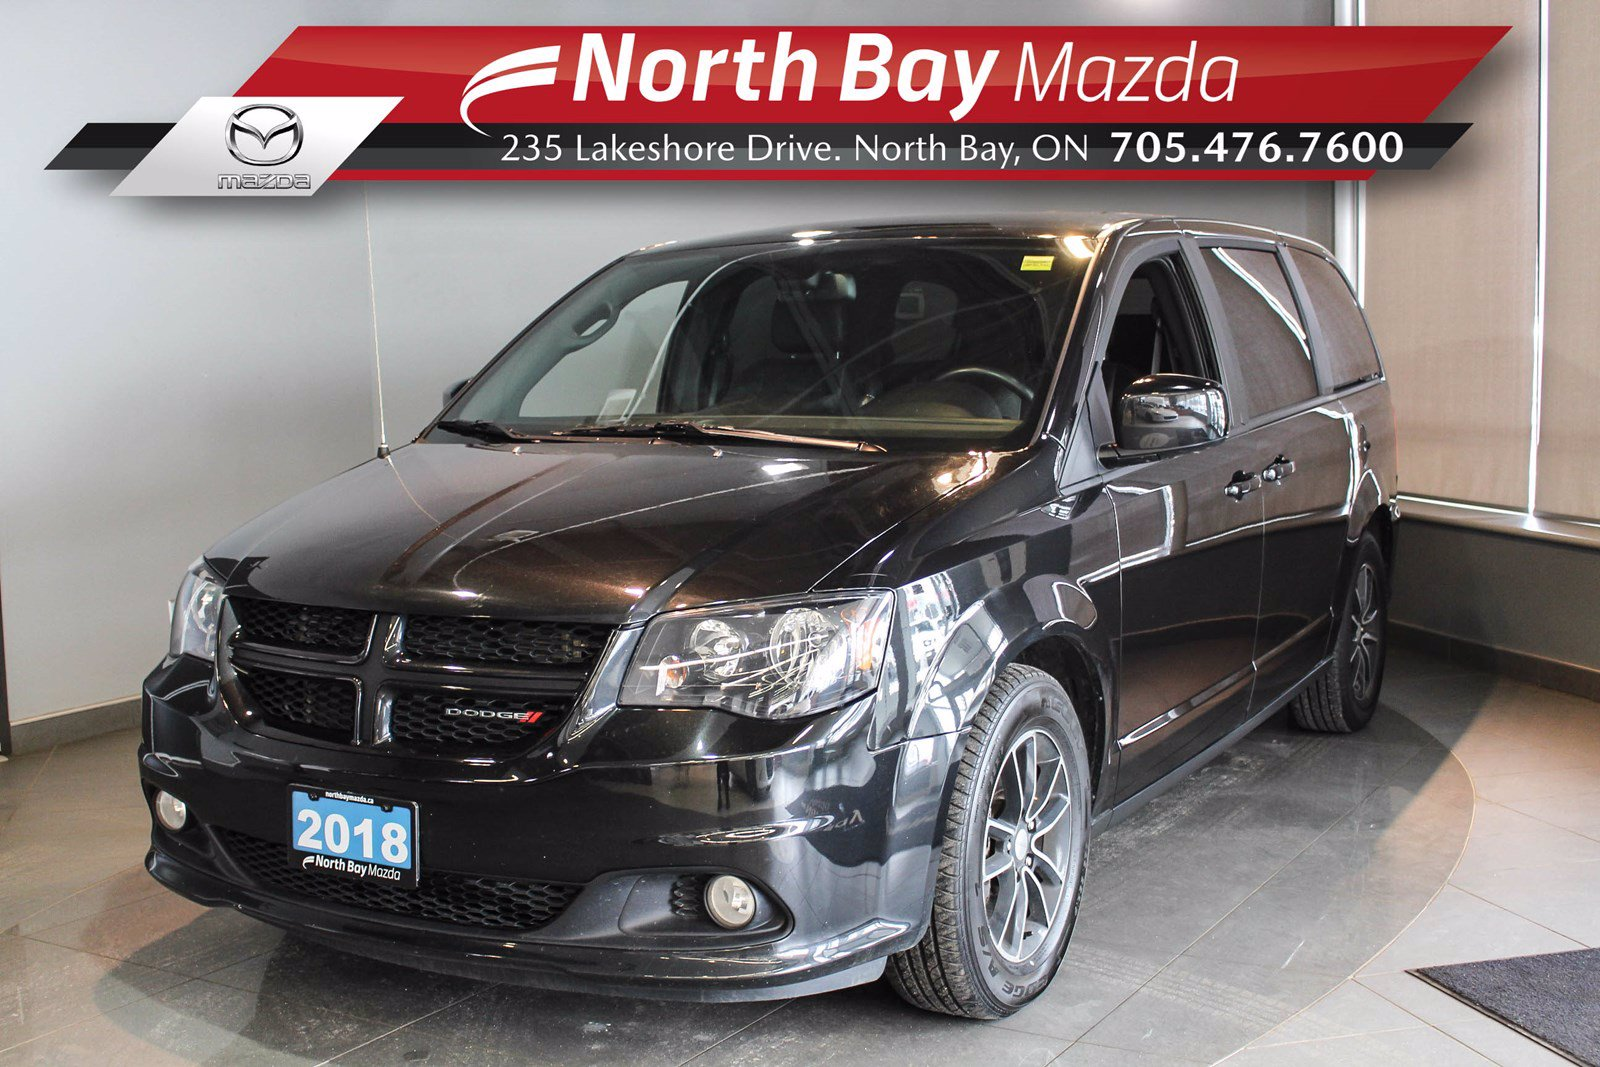 Pre-Owned 2018 Dodge Grand Caravan GT - Test Drive Available by Appt!